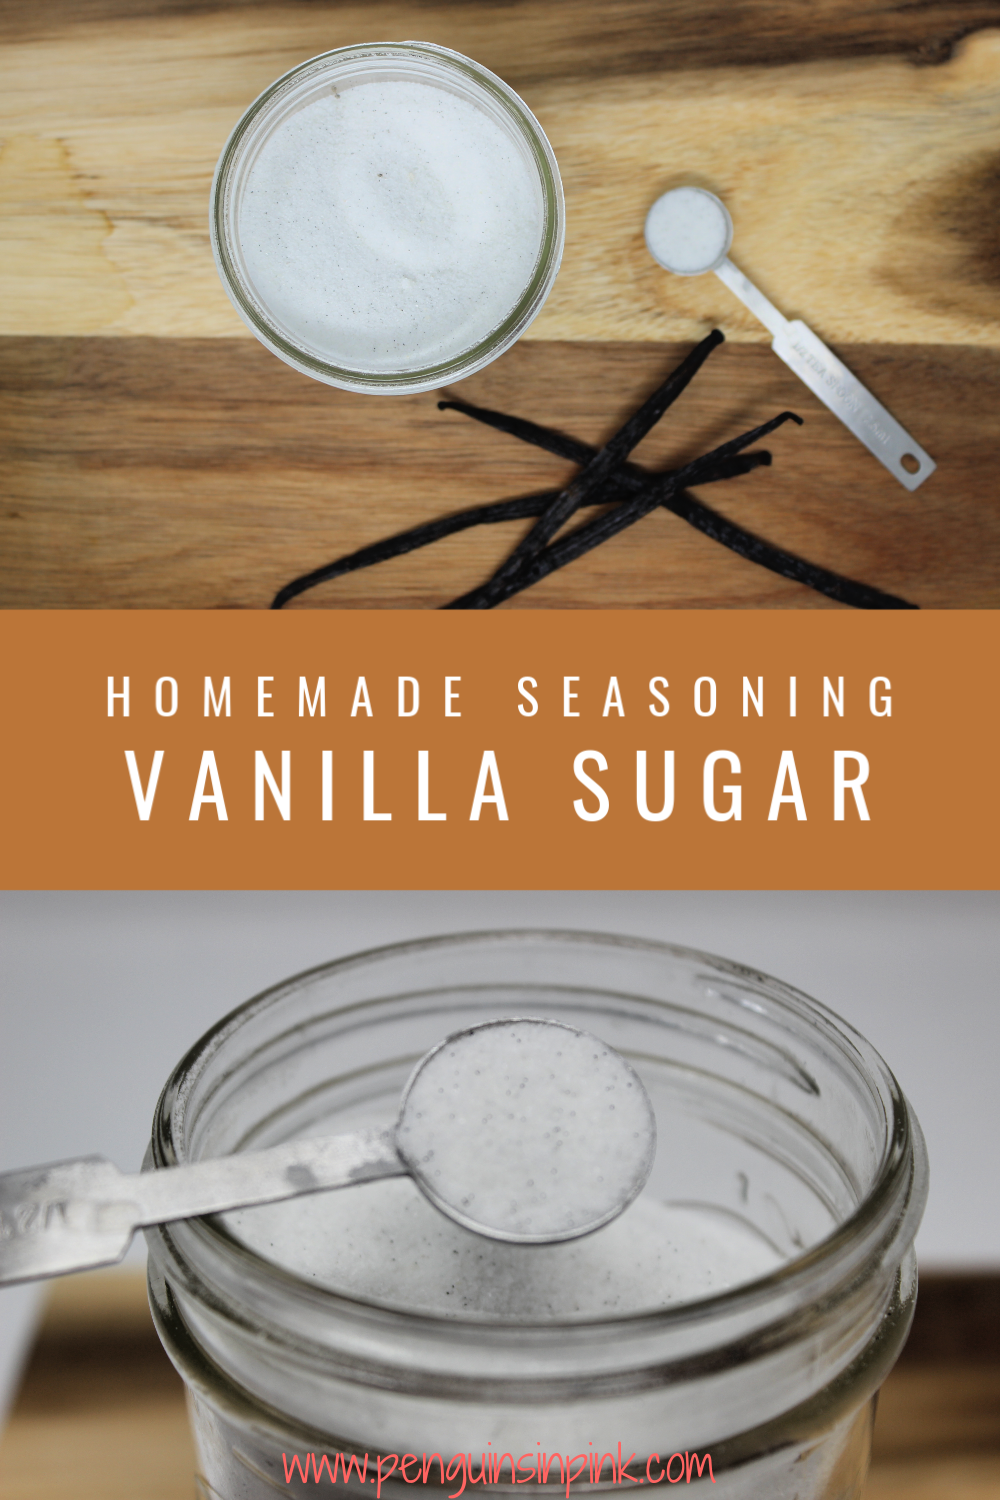 Enhance the vanilla flavor in everything from coffee and tea to cakes and cookies with this flavorful, homemade version of vanilla sugar seasoning. It is a 1:1 mix of white sugar and vanilla beans.